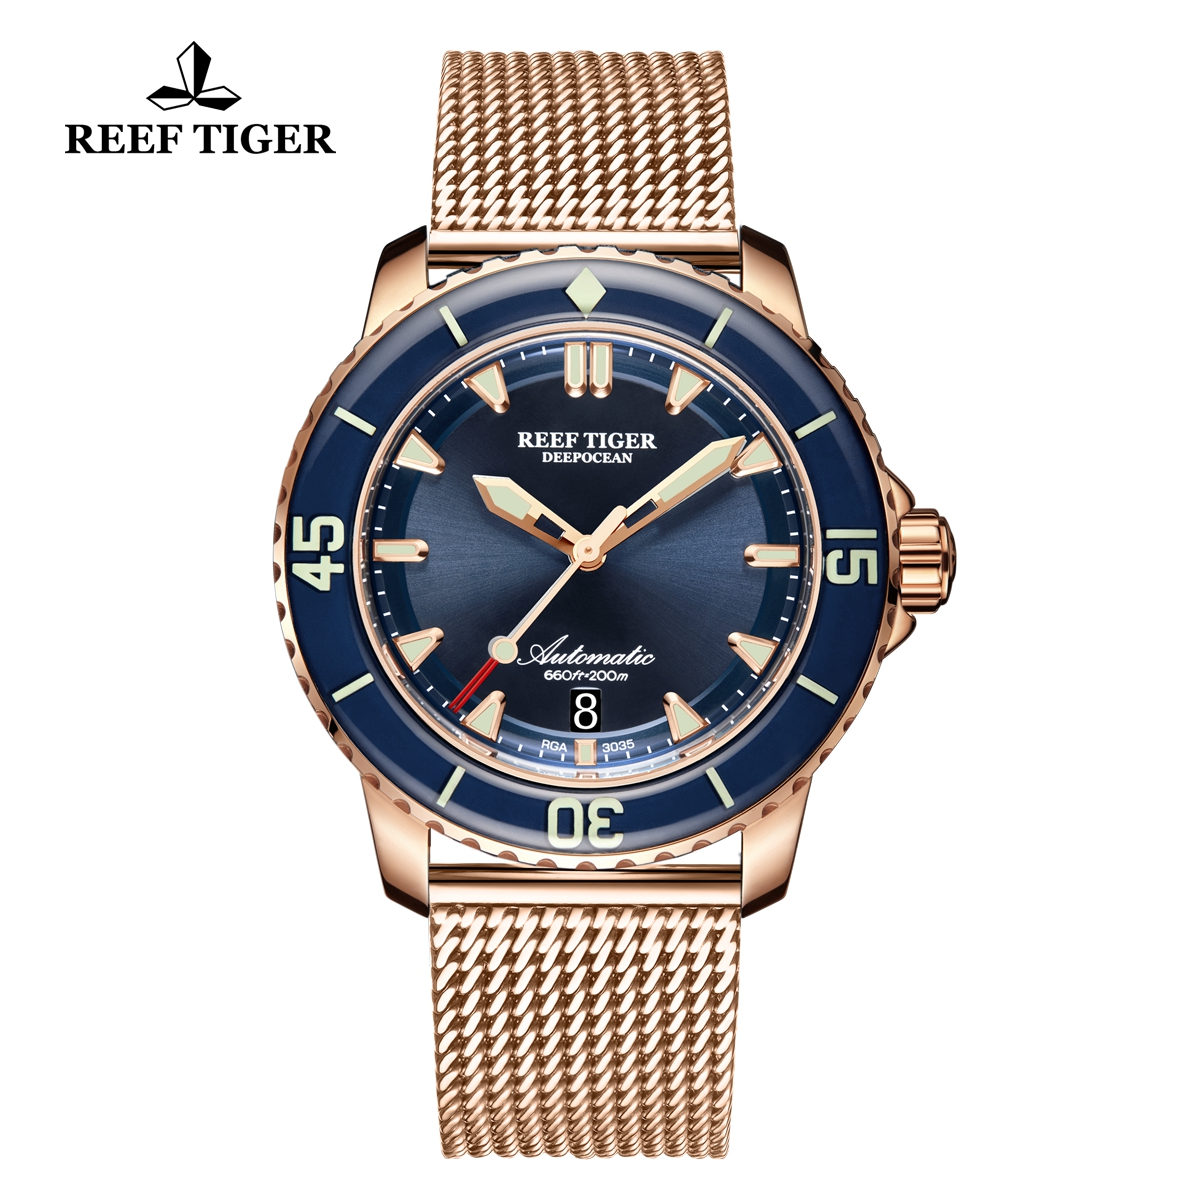 Reef Tiger Deep Ocean Casual Watches Automatic Watch Rose Gold Case Blue Dial RGA3035-PLP